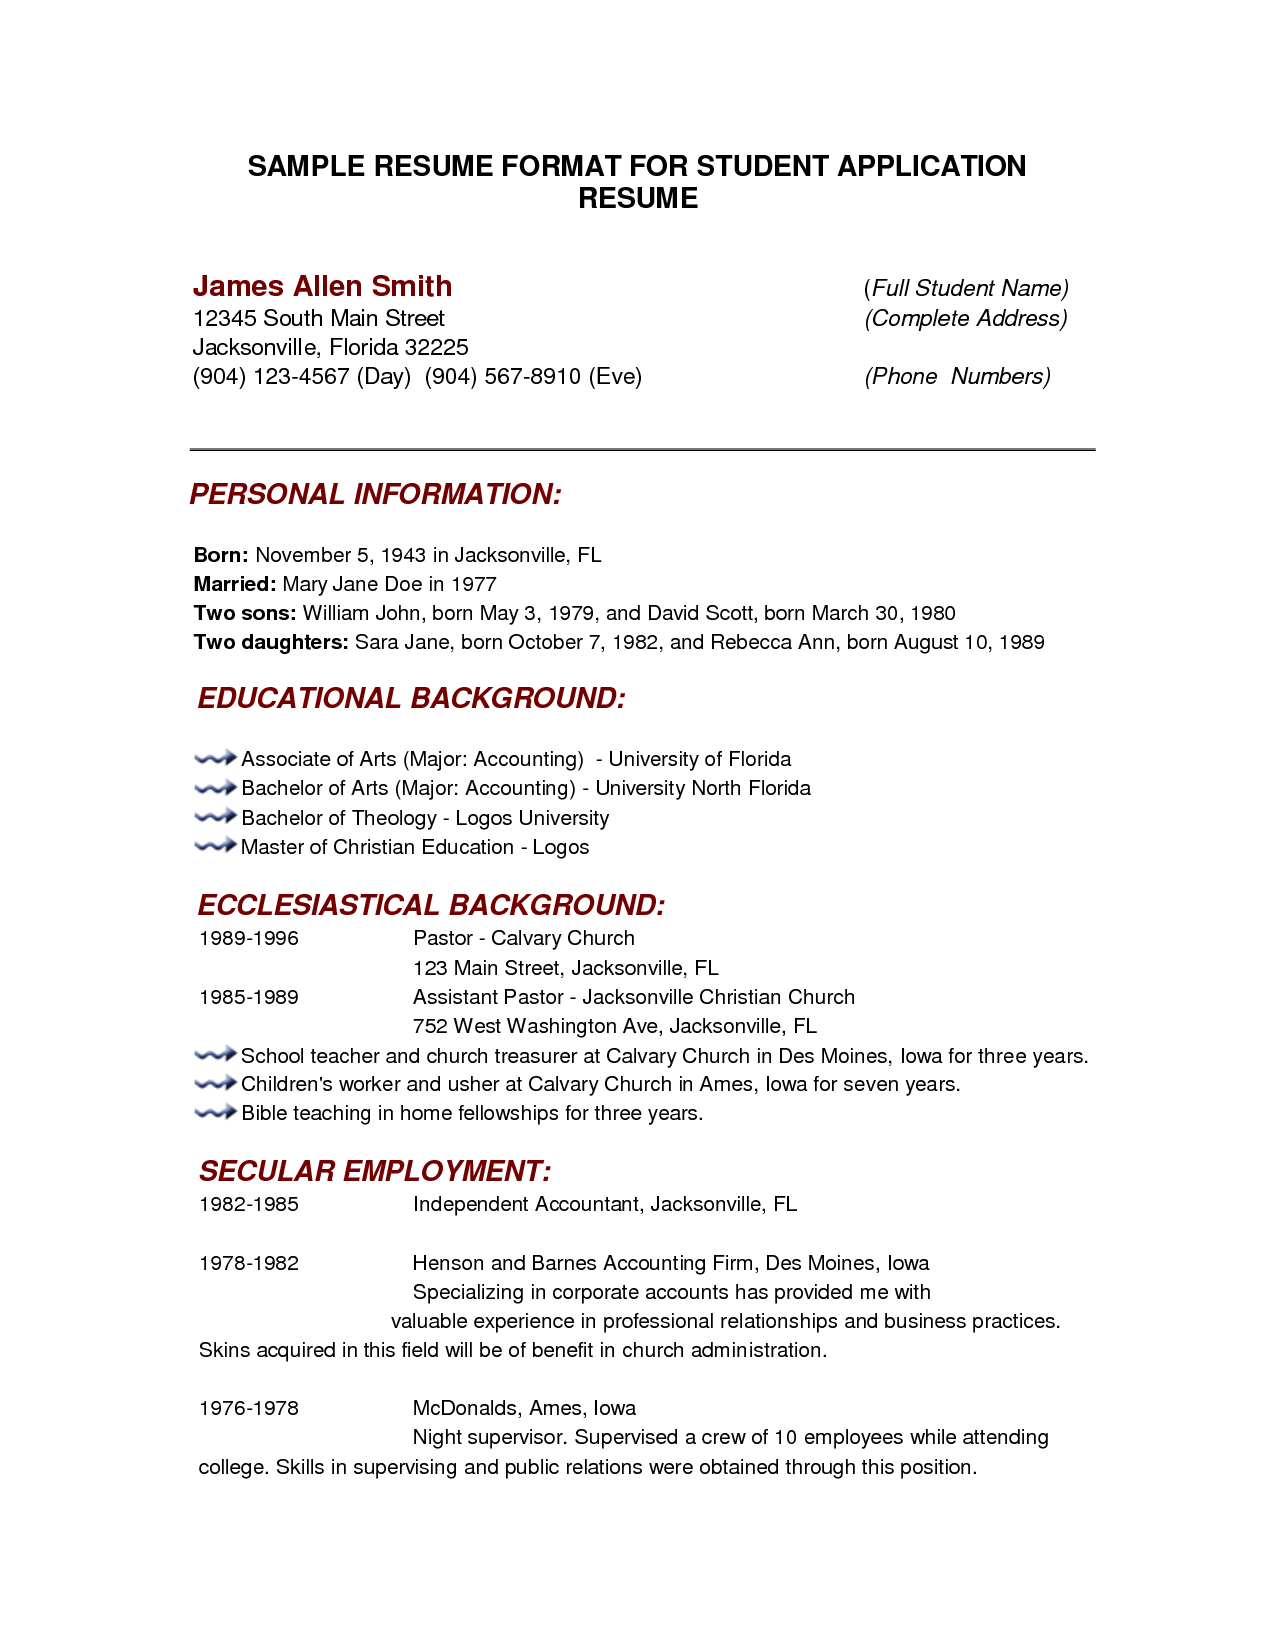 High Quality Resume Template For College Students   Http://www.resumecareer.info/resume  Template For College Students 2/